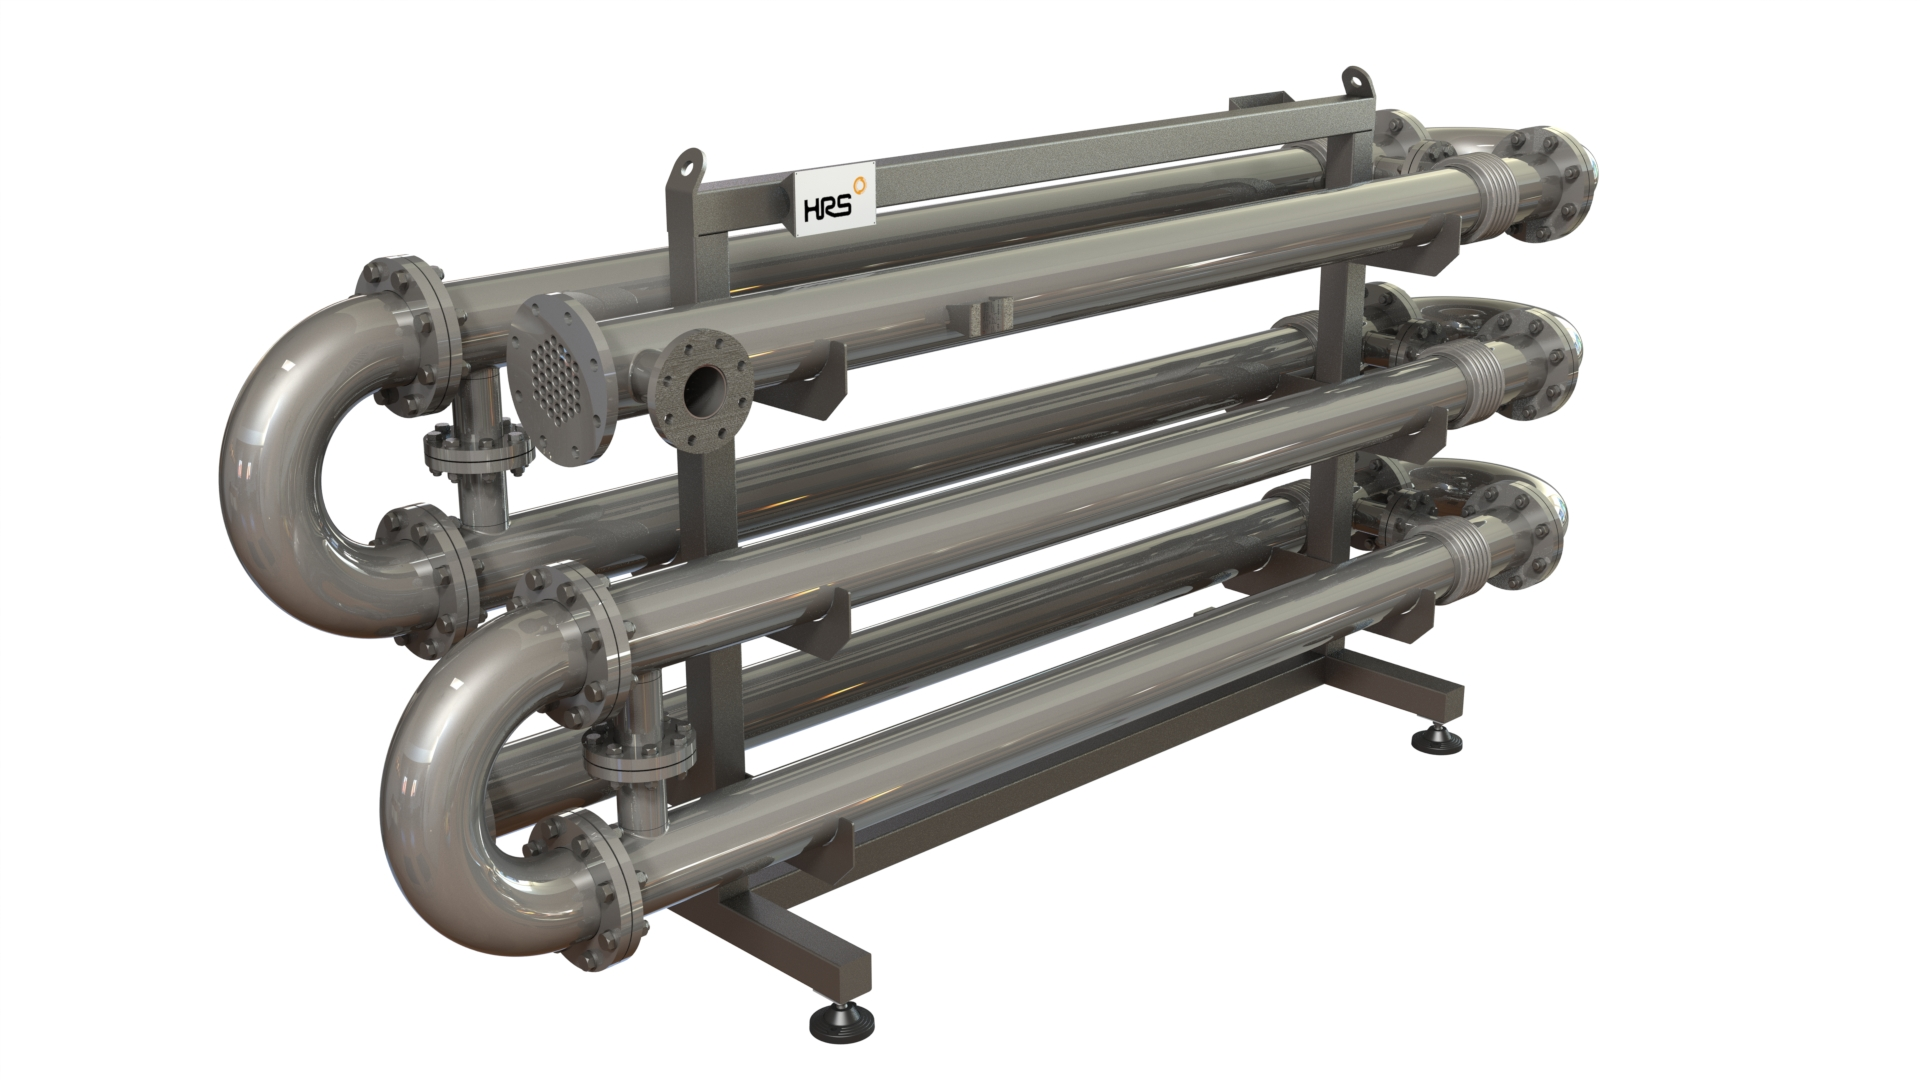 Industrial Heat Exchangers : Industrial multi tube heat exchangers hrs k series